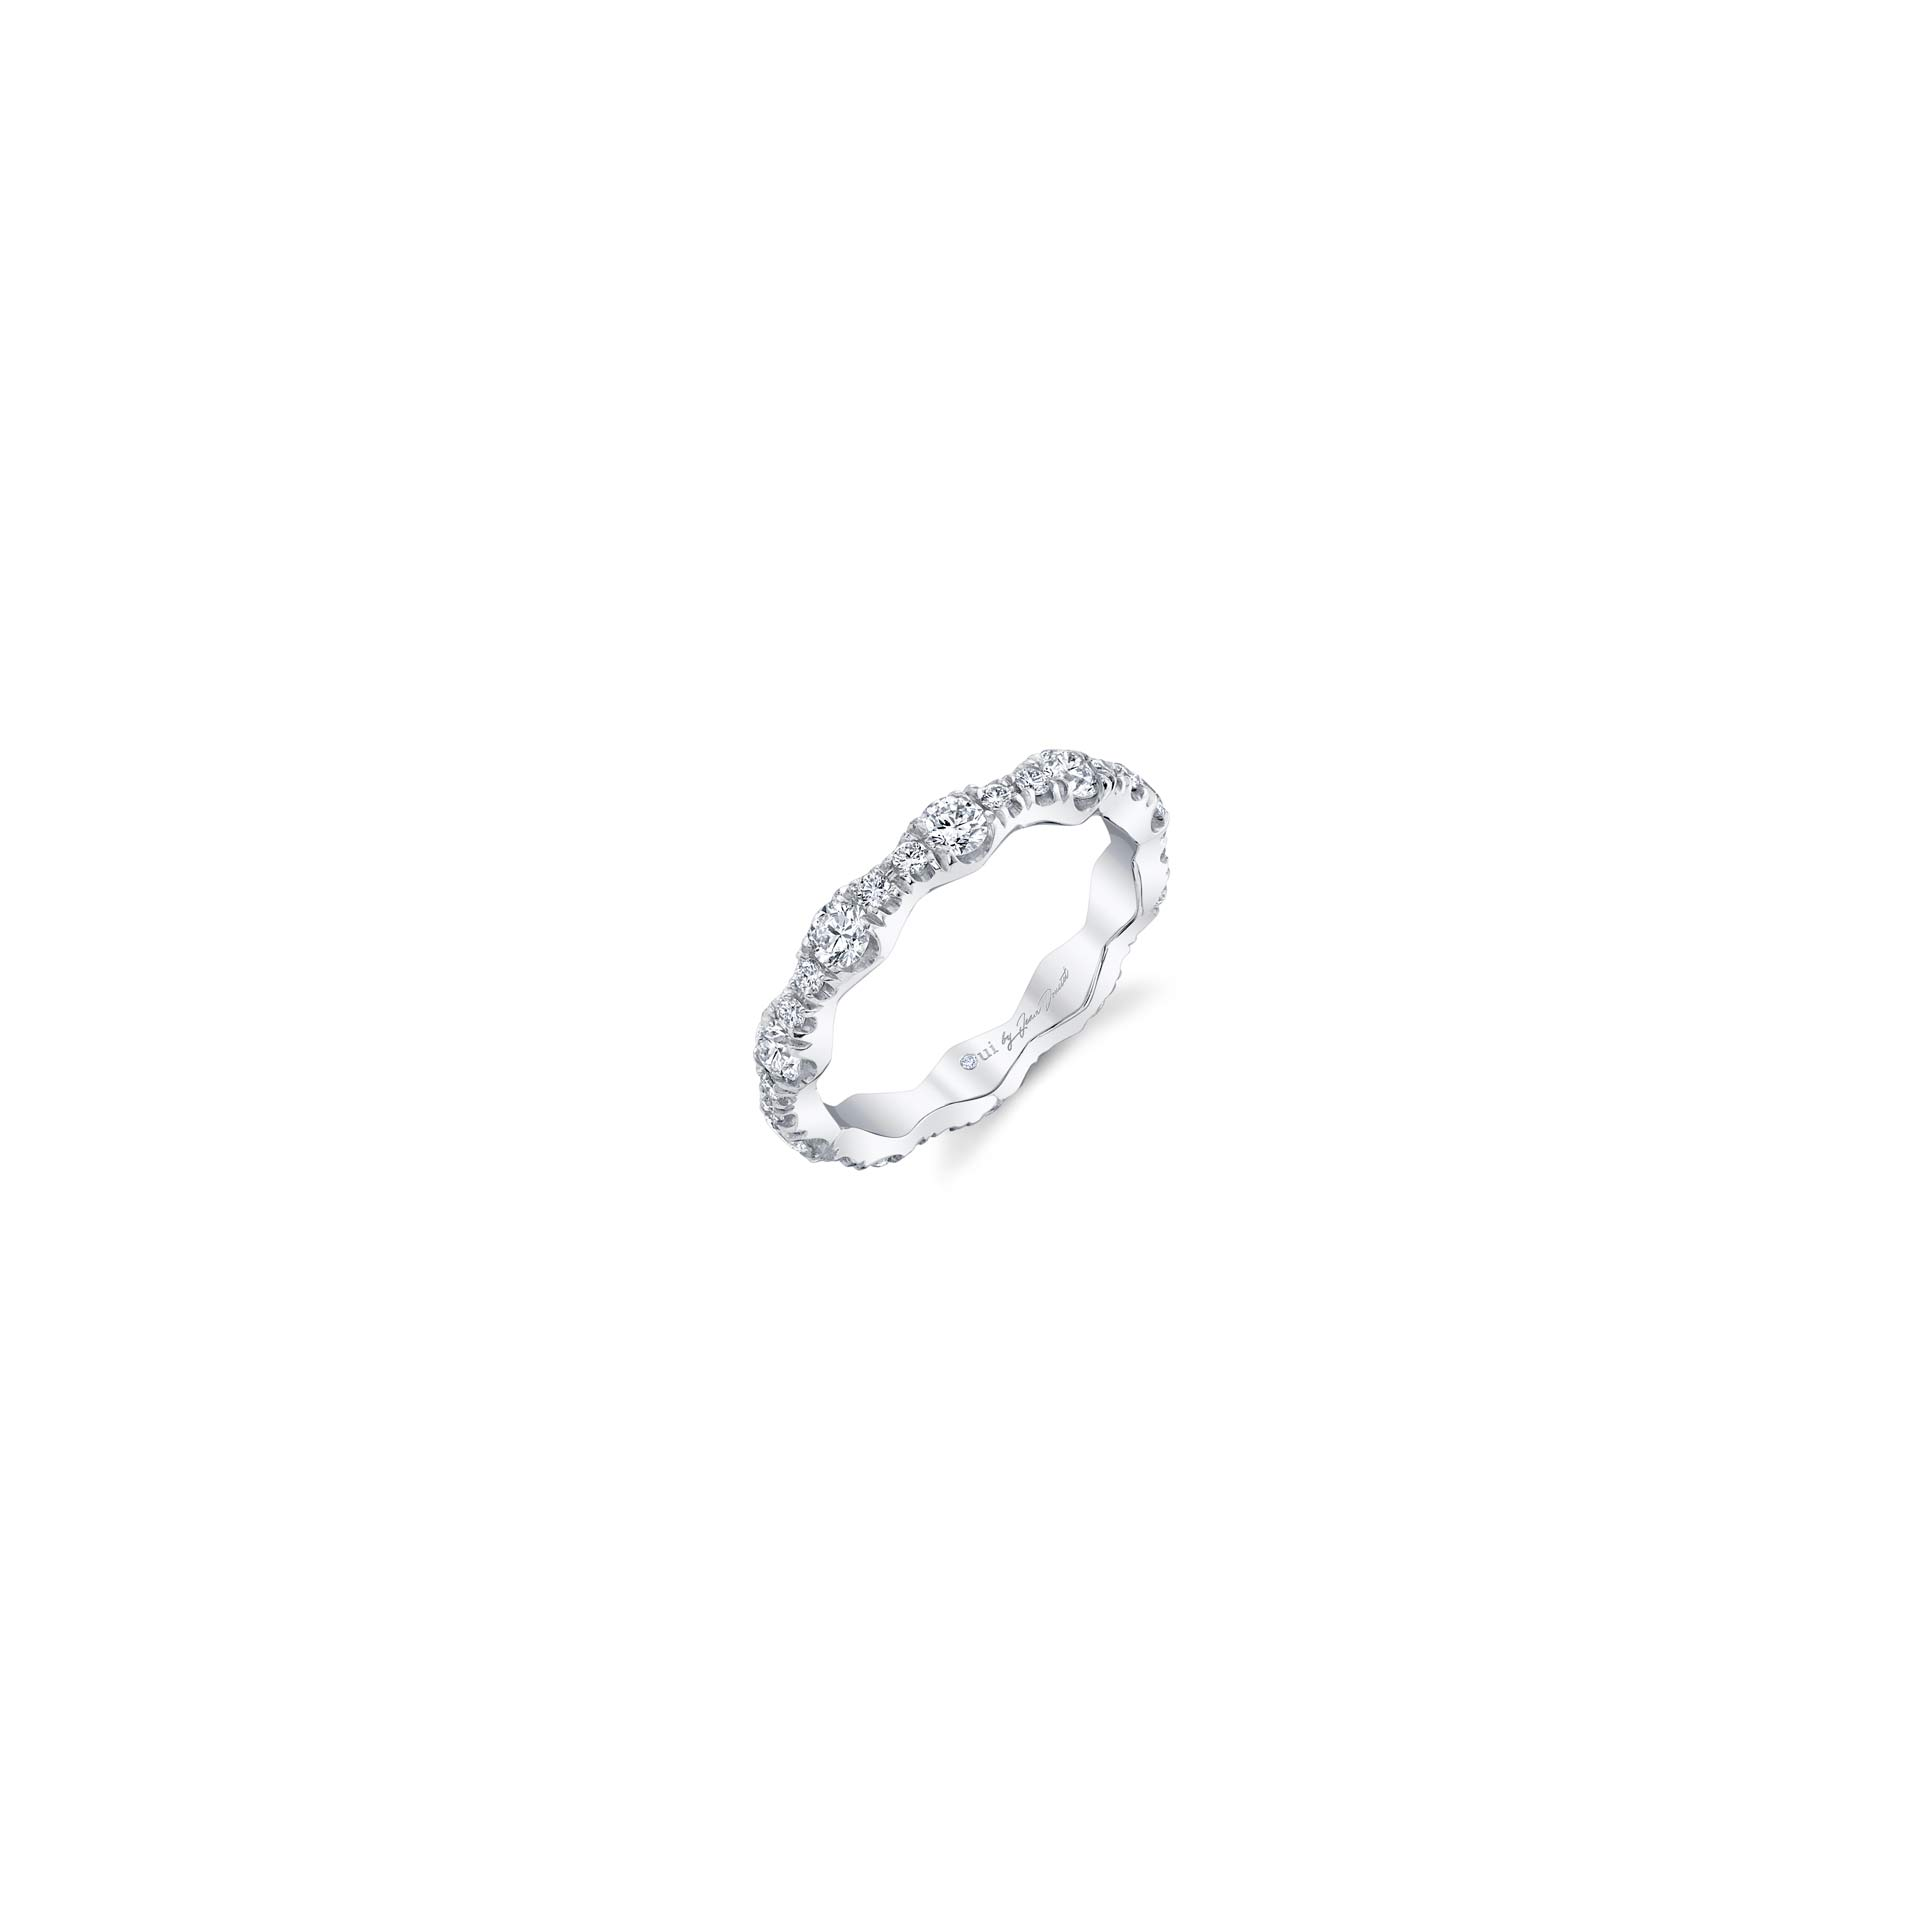 Yvonne Women's Wedding Band with a diamond pavé wave in 18k White Gold Standing View by Oui by Jean Dousset